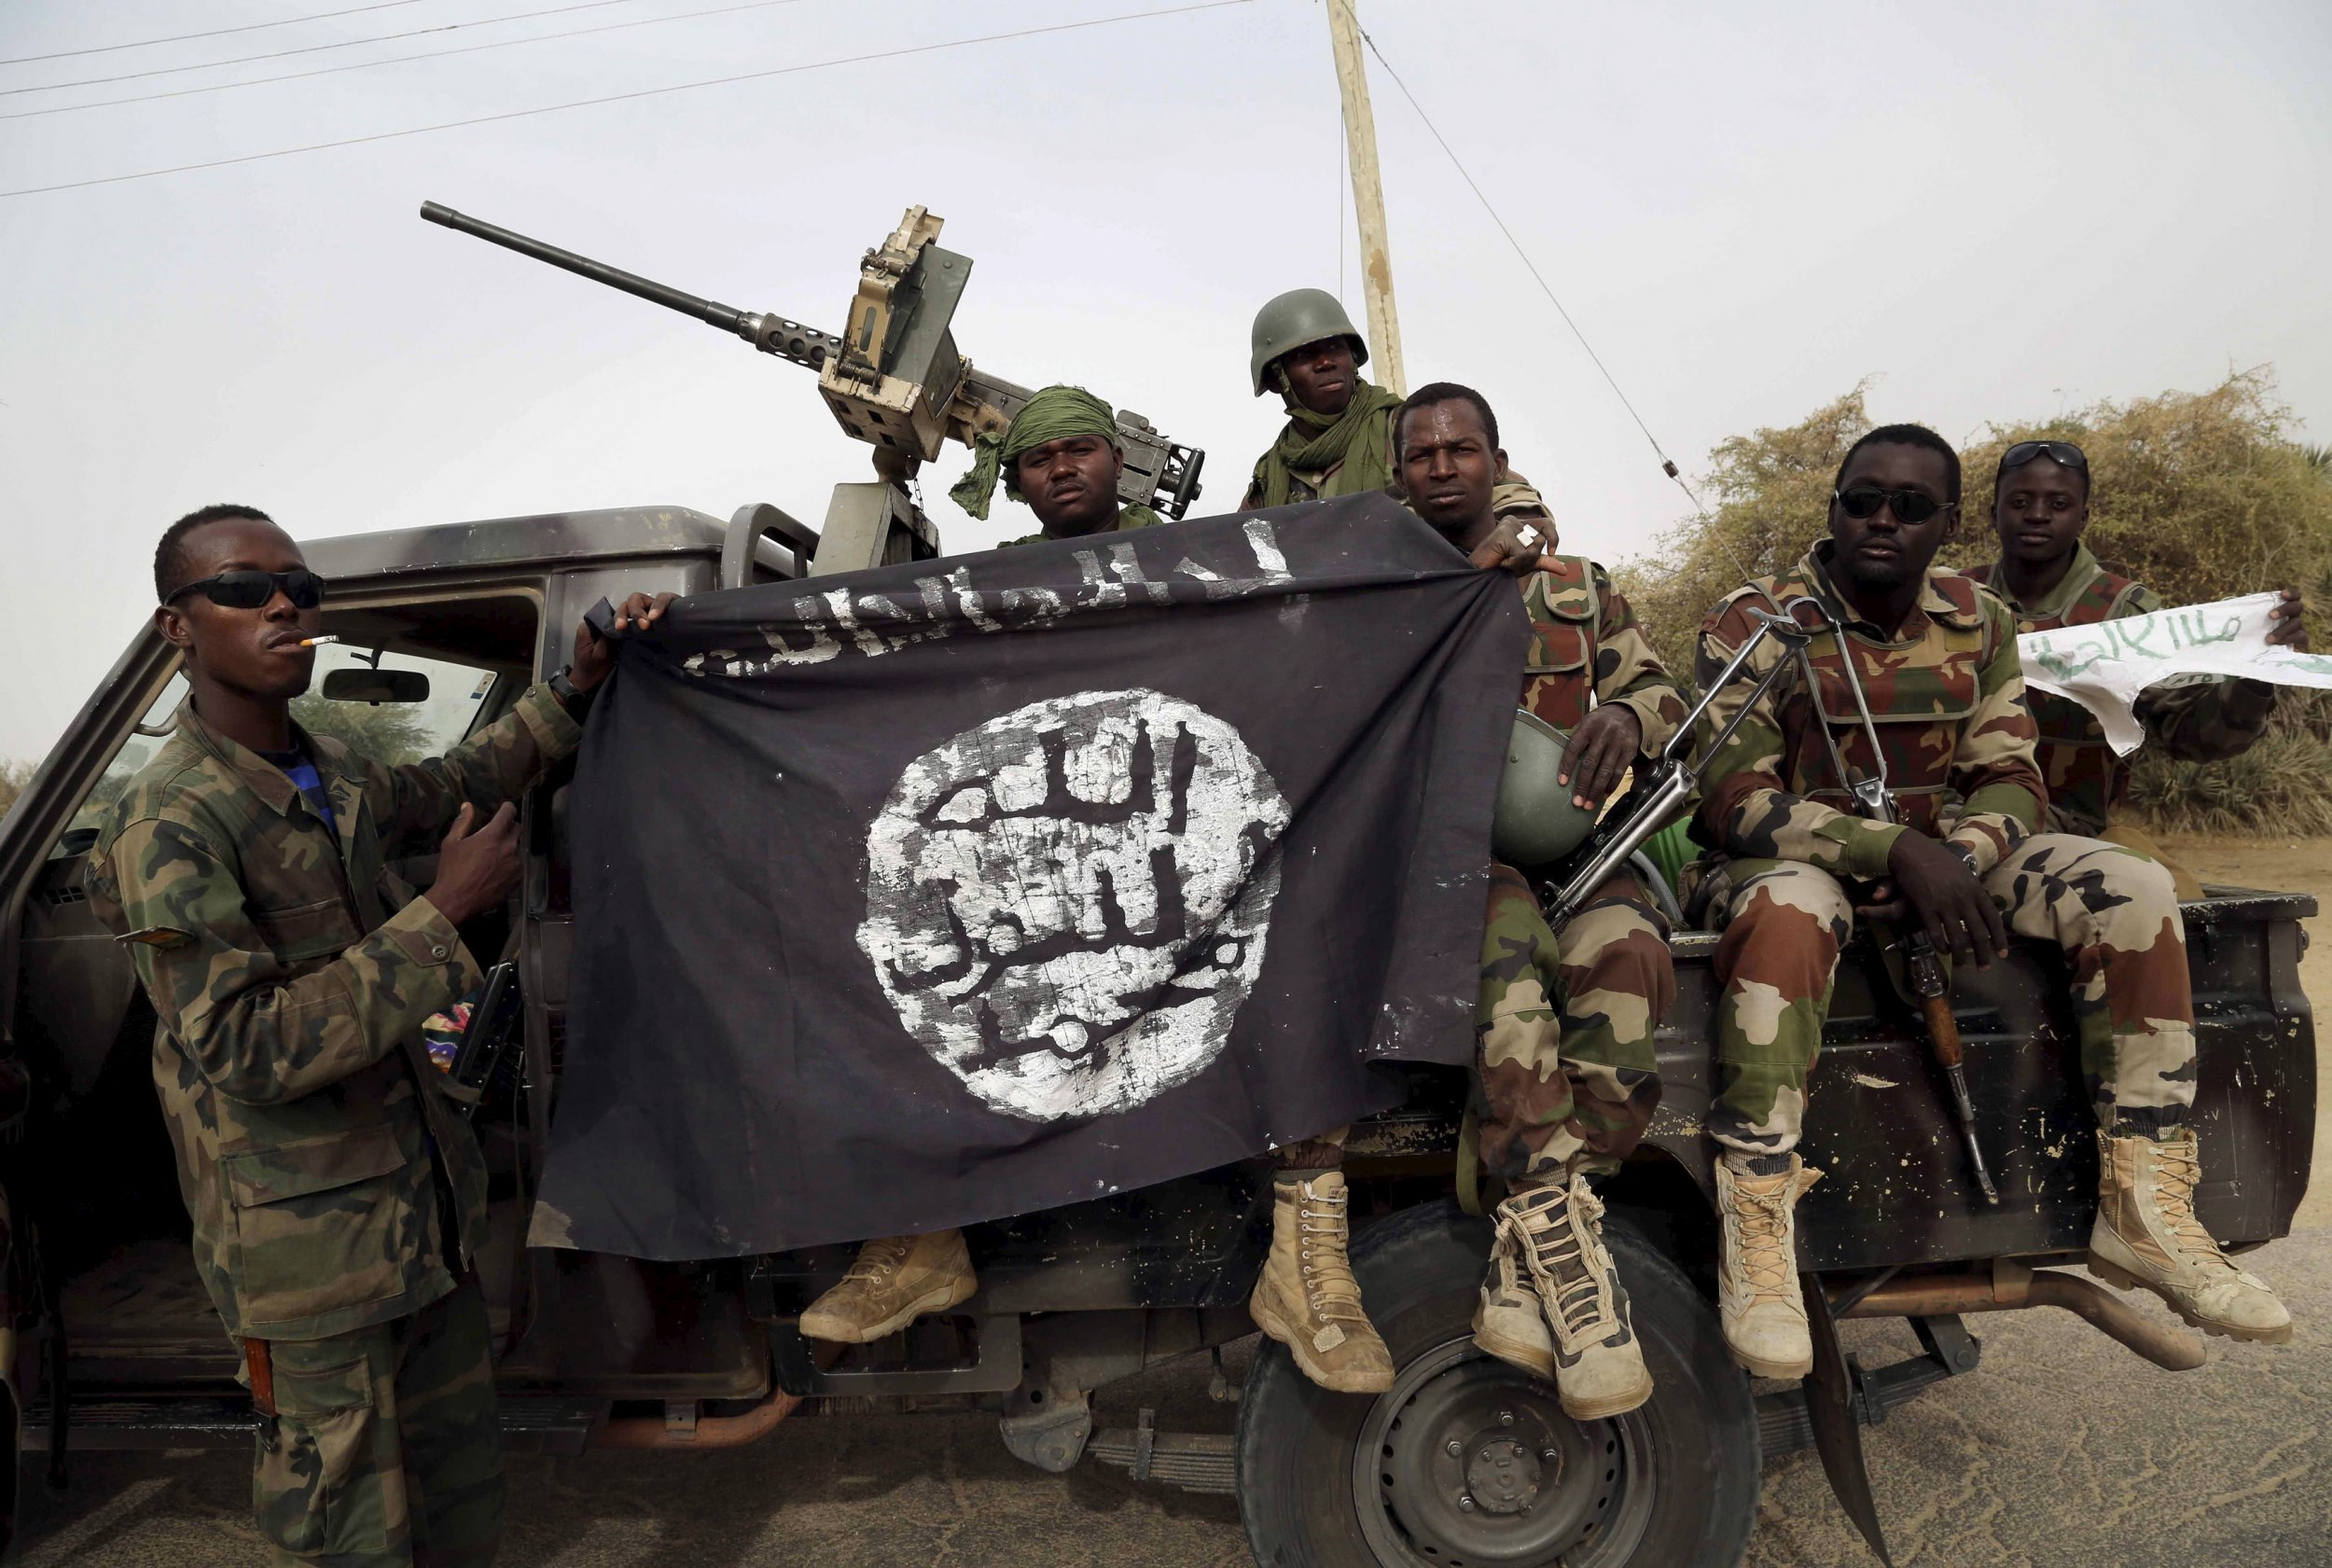 Nigerian soldiers with Boko Haram flag.